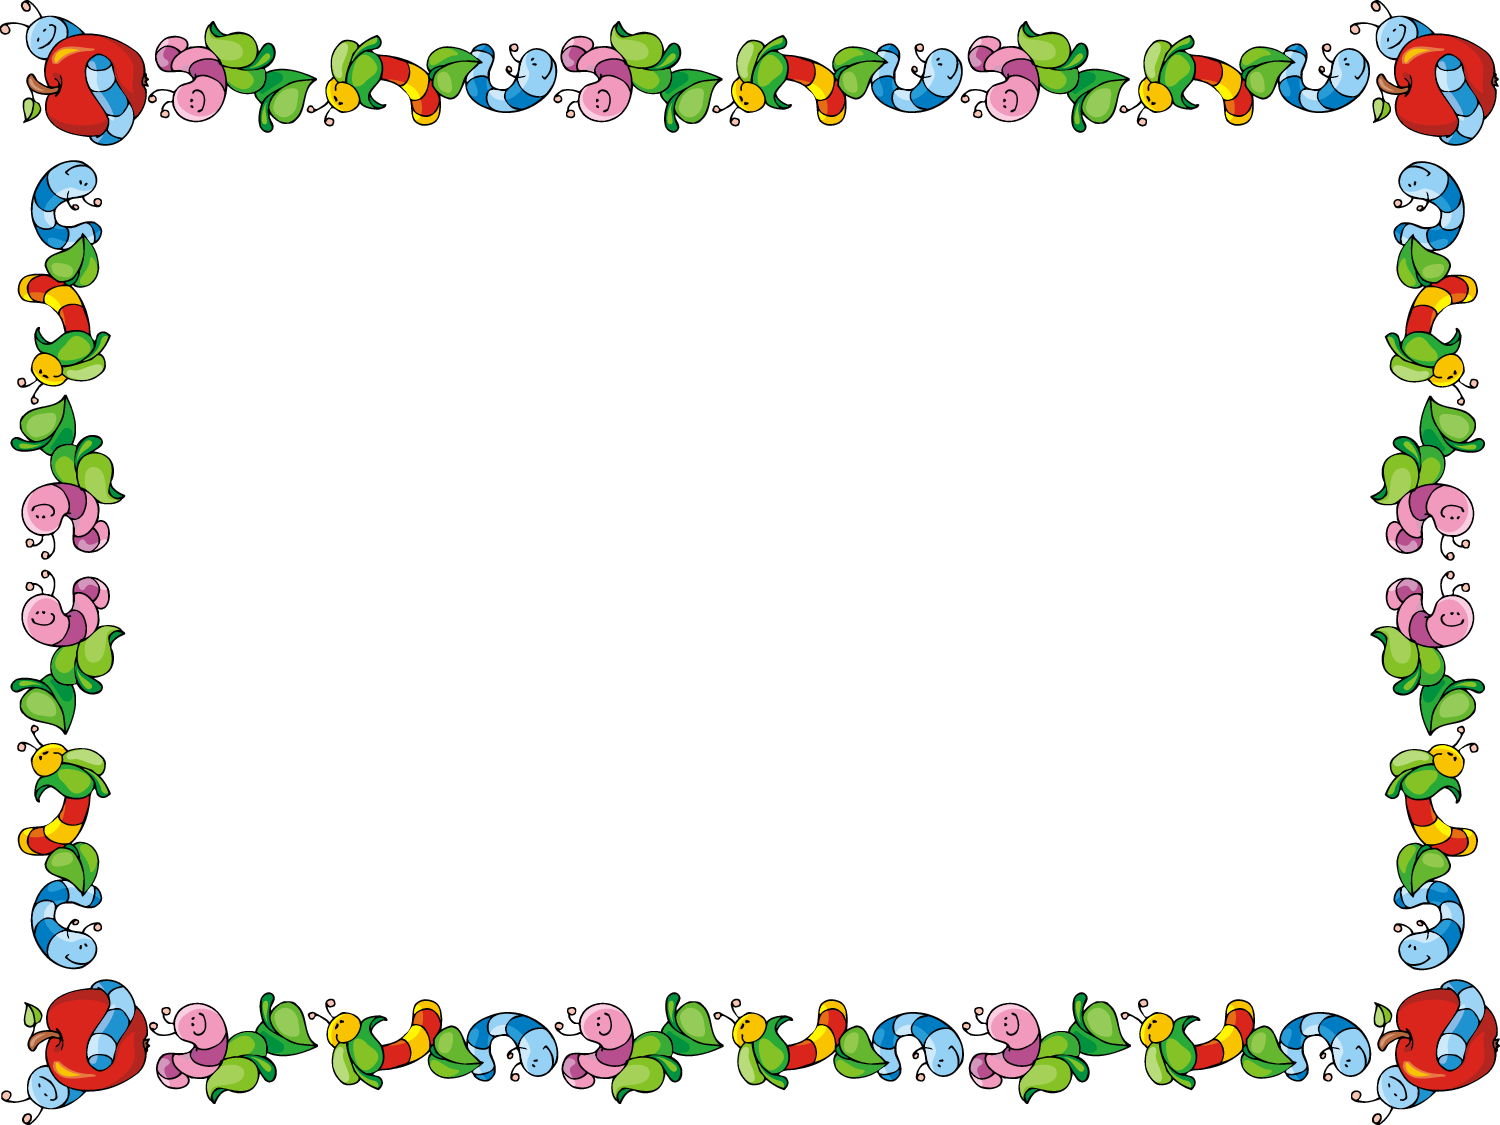 Worm clipart border. Free page borders for